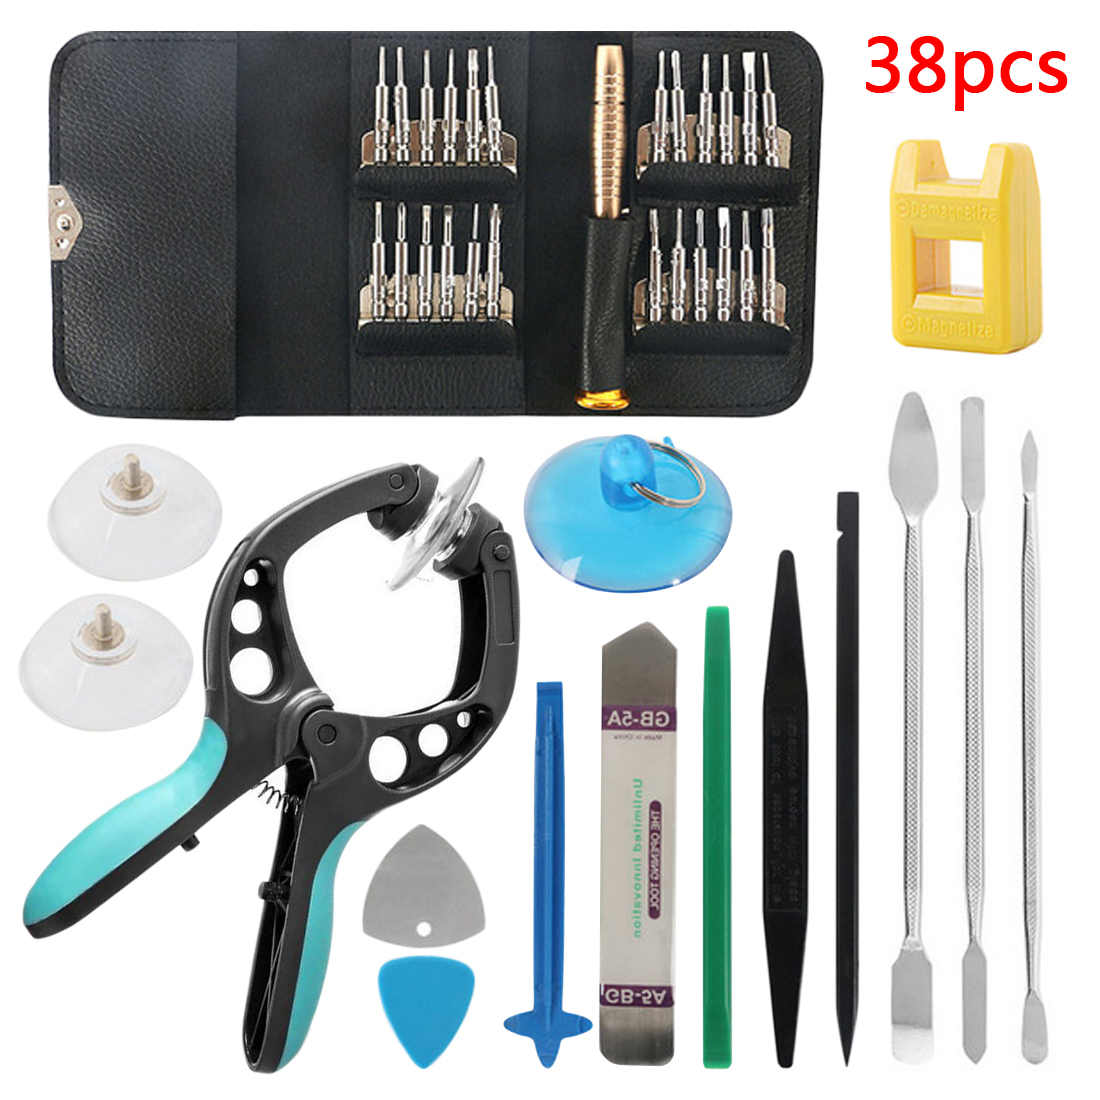 38 In 1 Smart Cell Mobile Phone Opening Pry Repair Tool  Screen Opening Pliers Kit Screwdrivers Set For IPhone For Samsung IPad